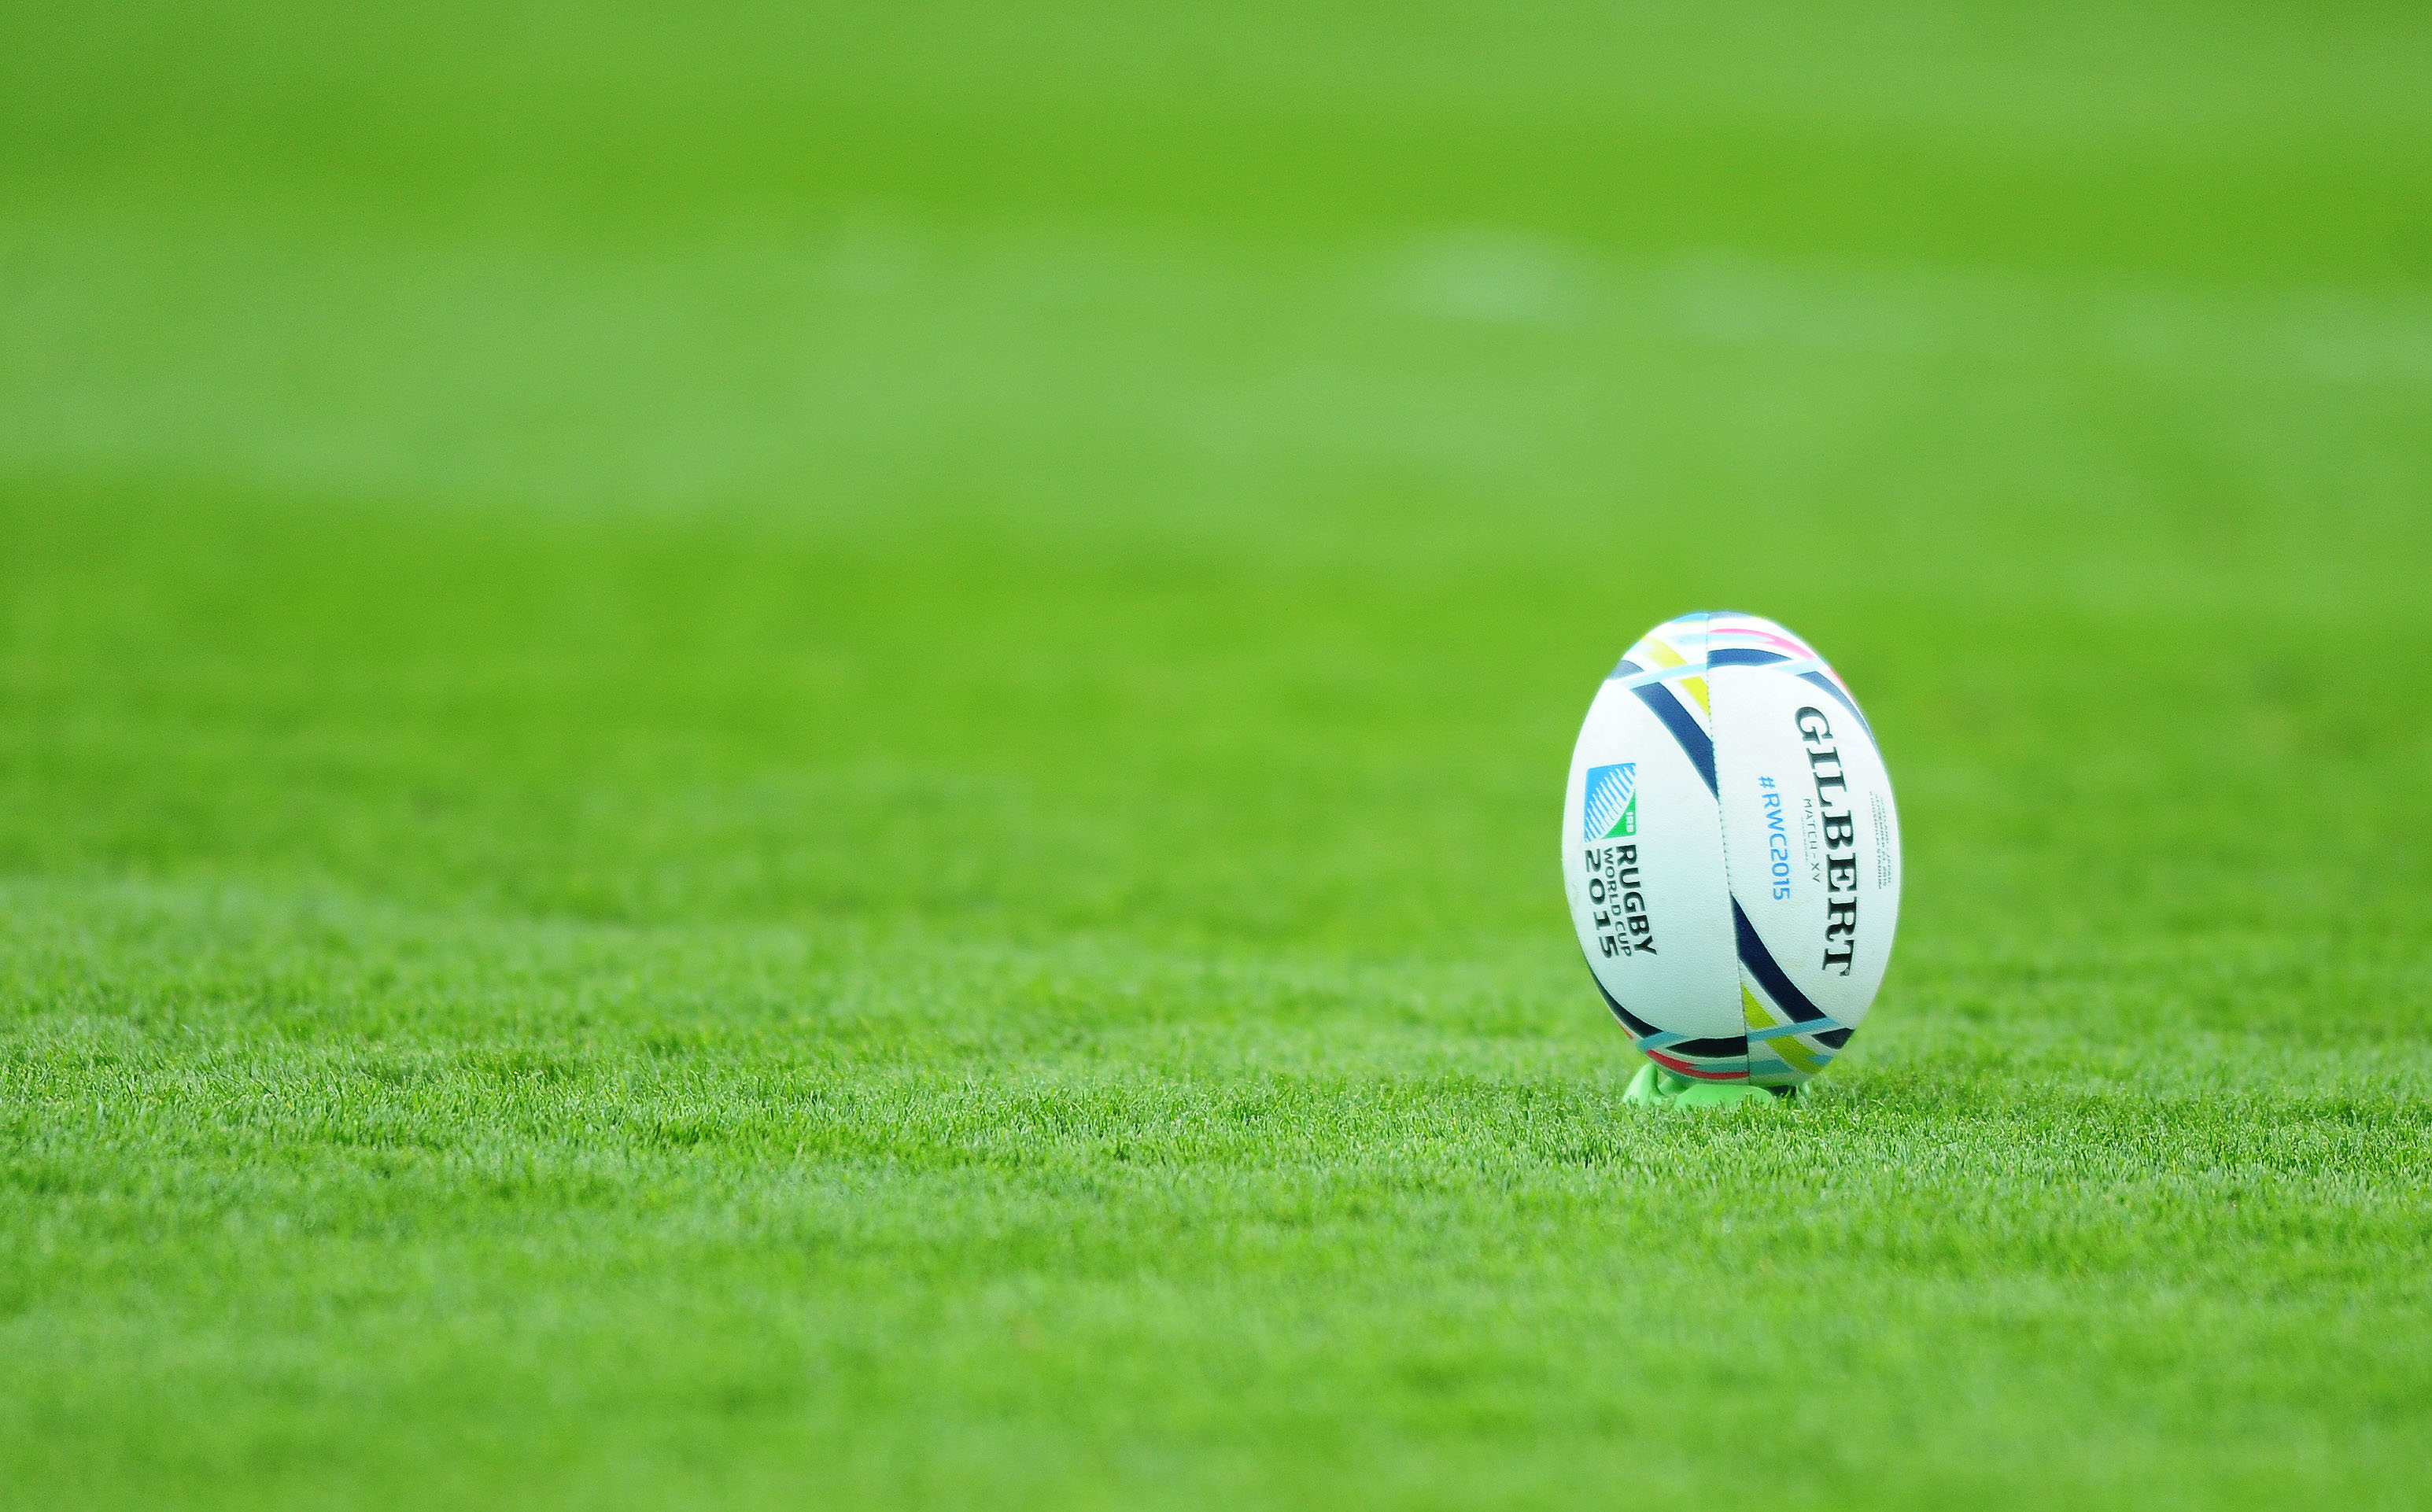 Rugby shut down due to the coronavirus on March 17.